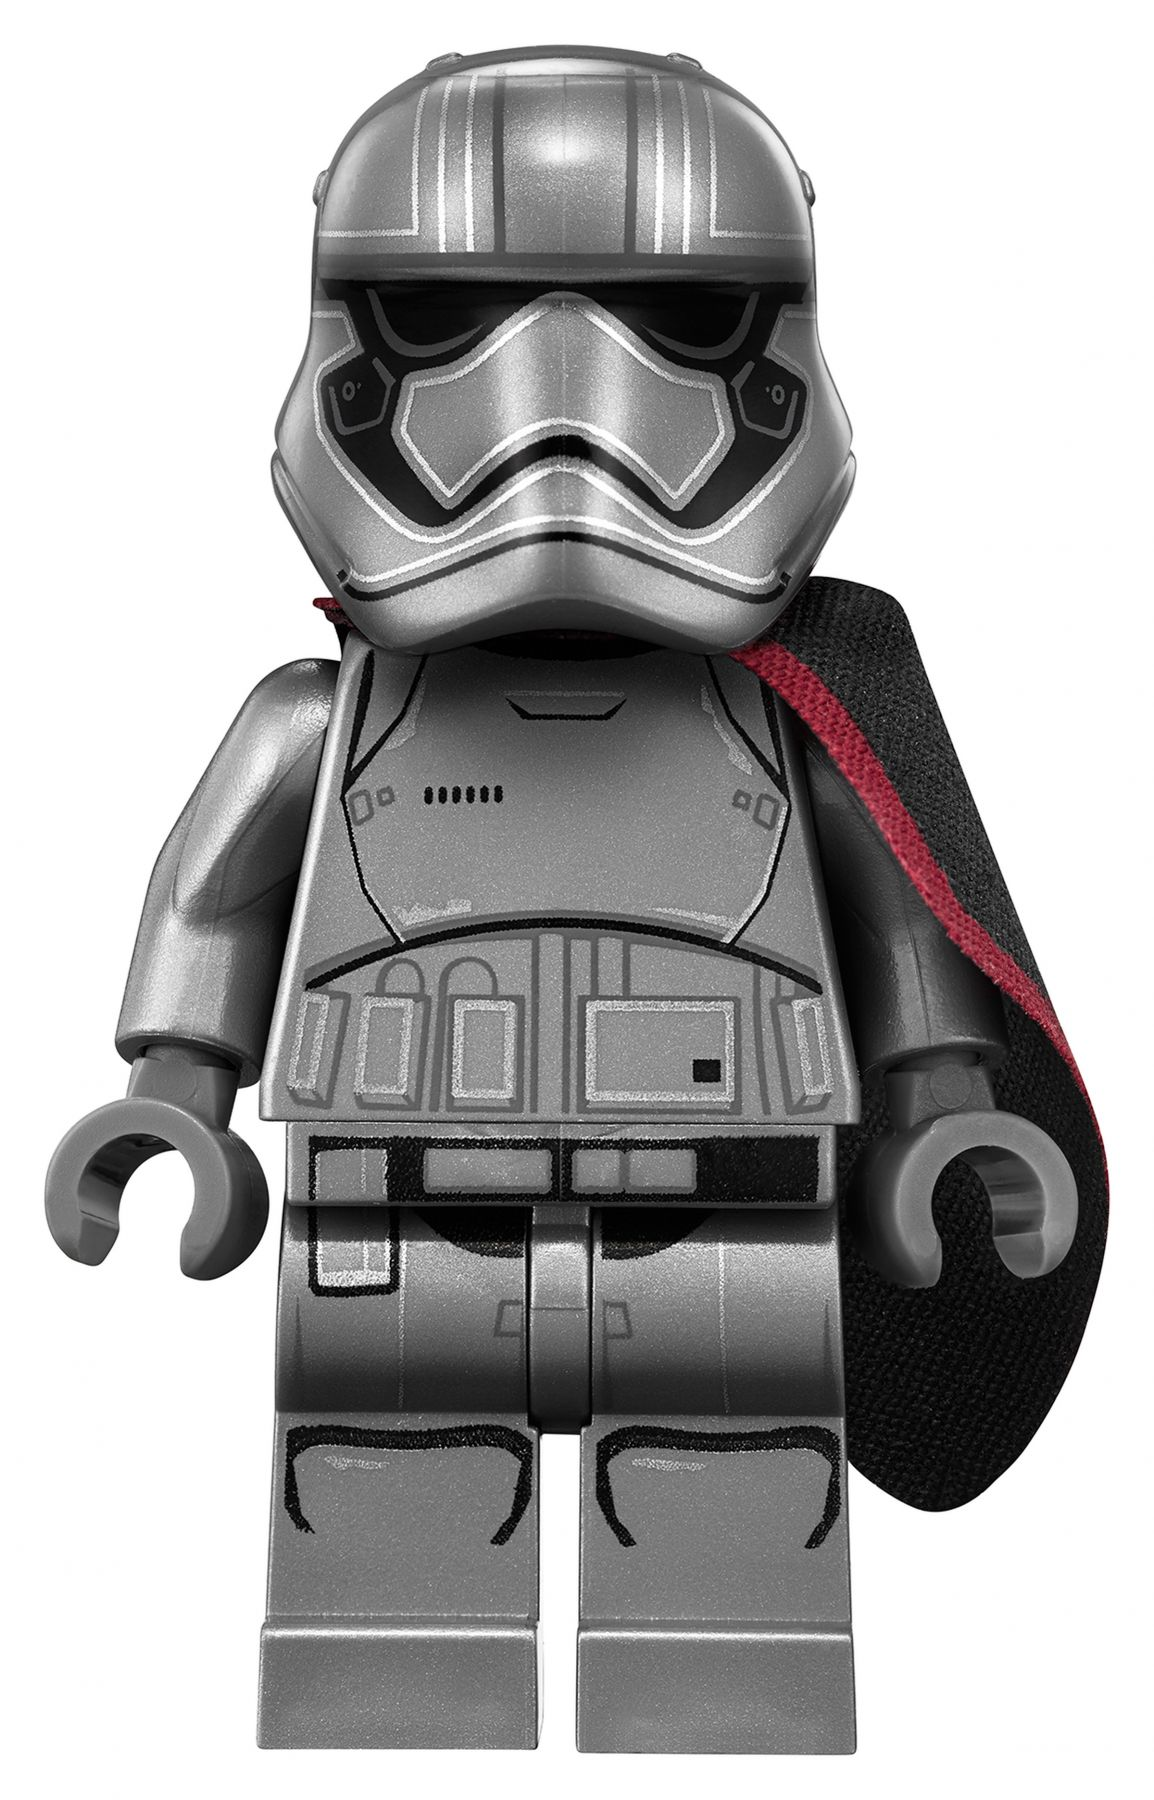 LEGO Star Wars 75201 First Order AT-ST™ LEGO_75201_alt2.jpg